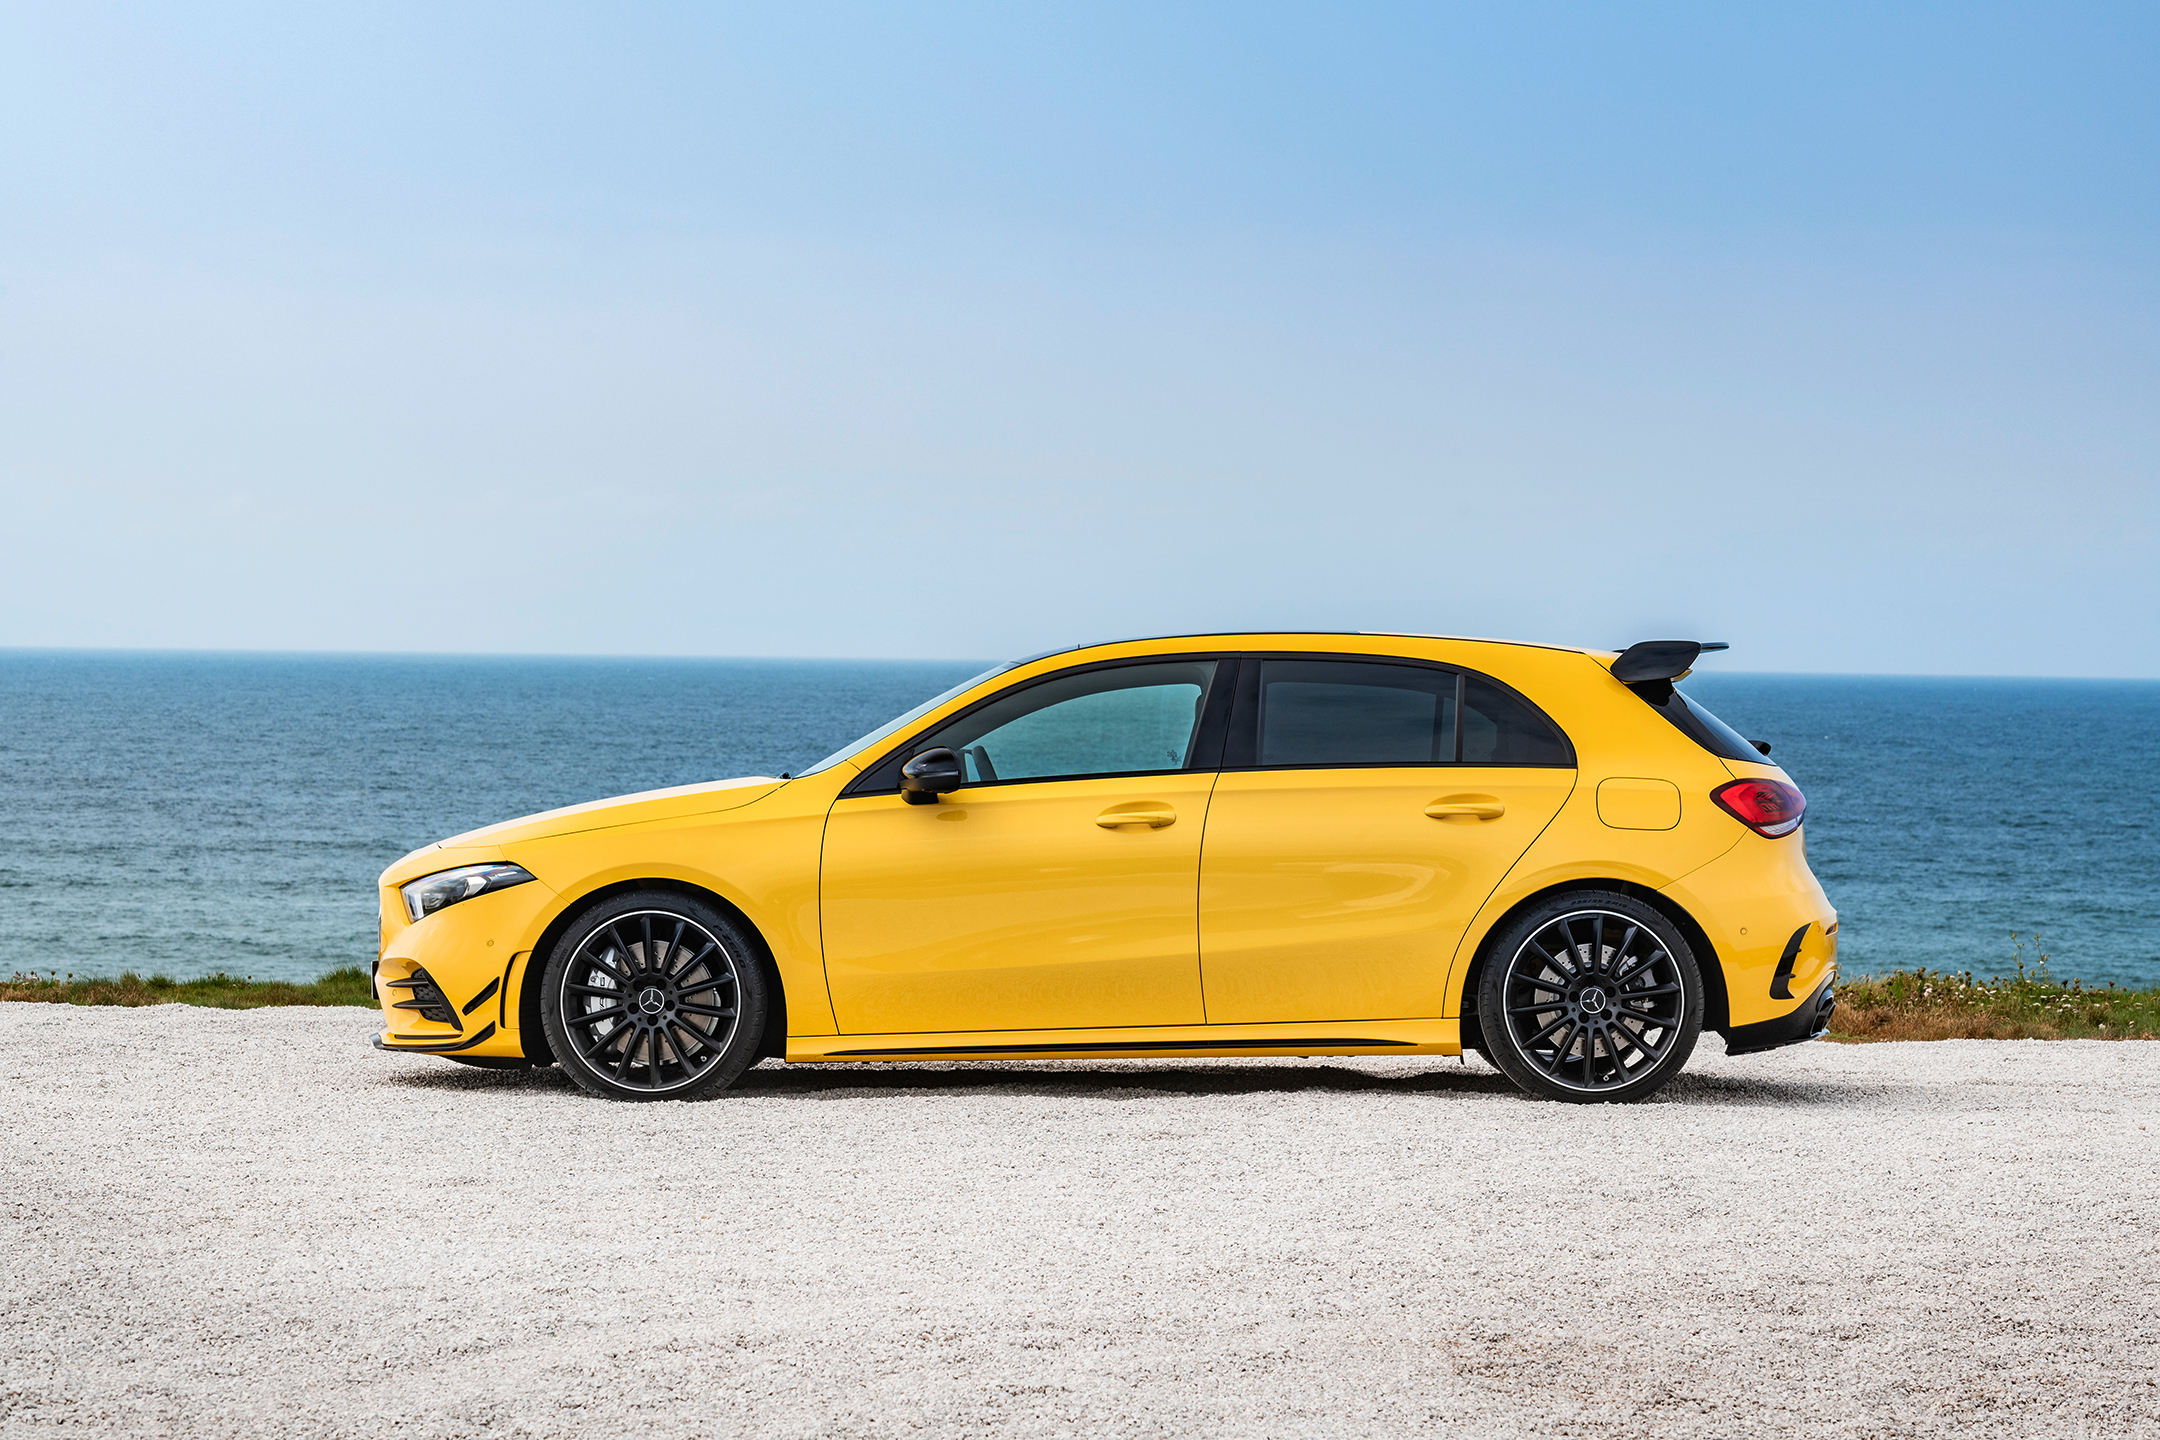 Mercedes-AMG A35 4MATIC - 2018 - side-face / profil